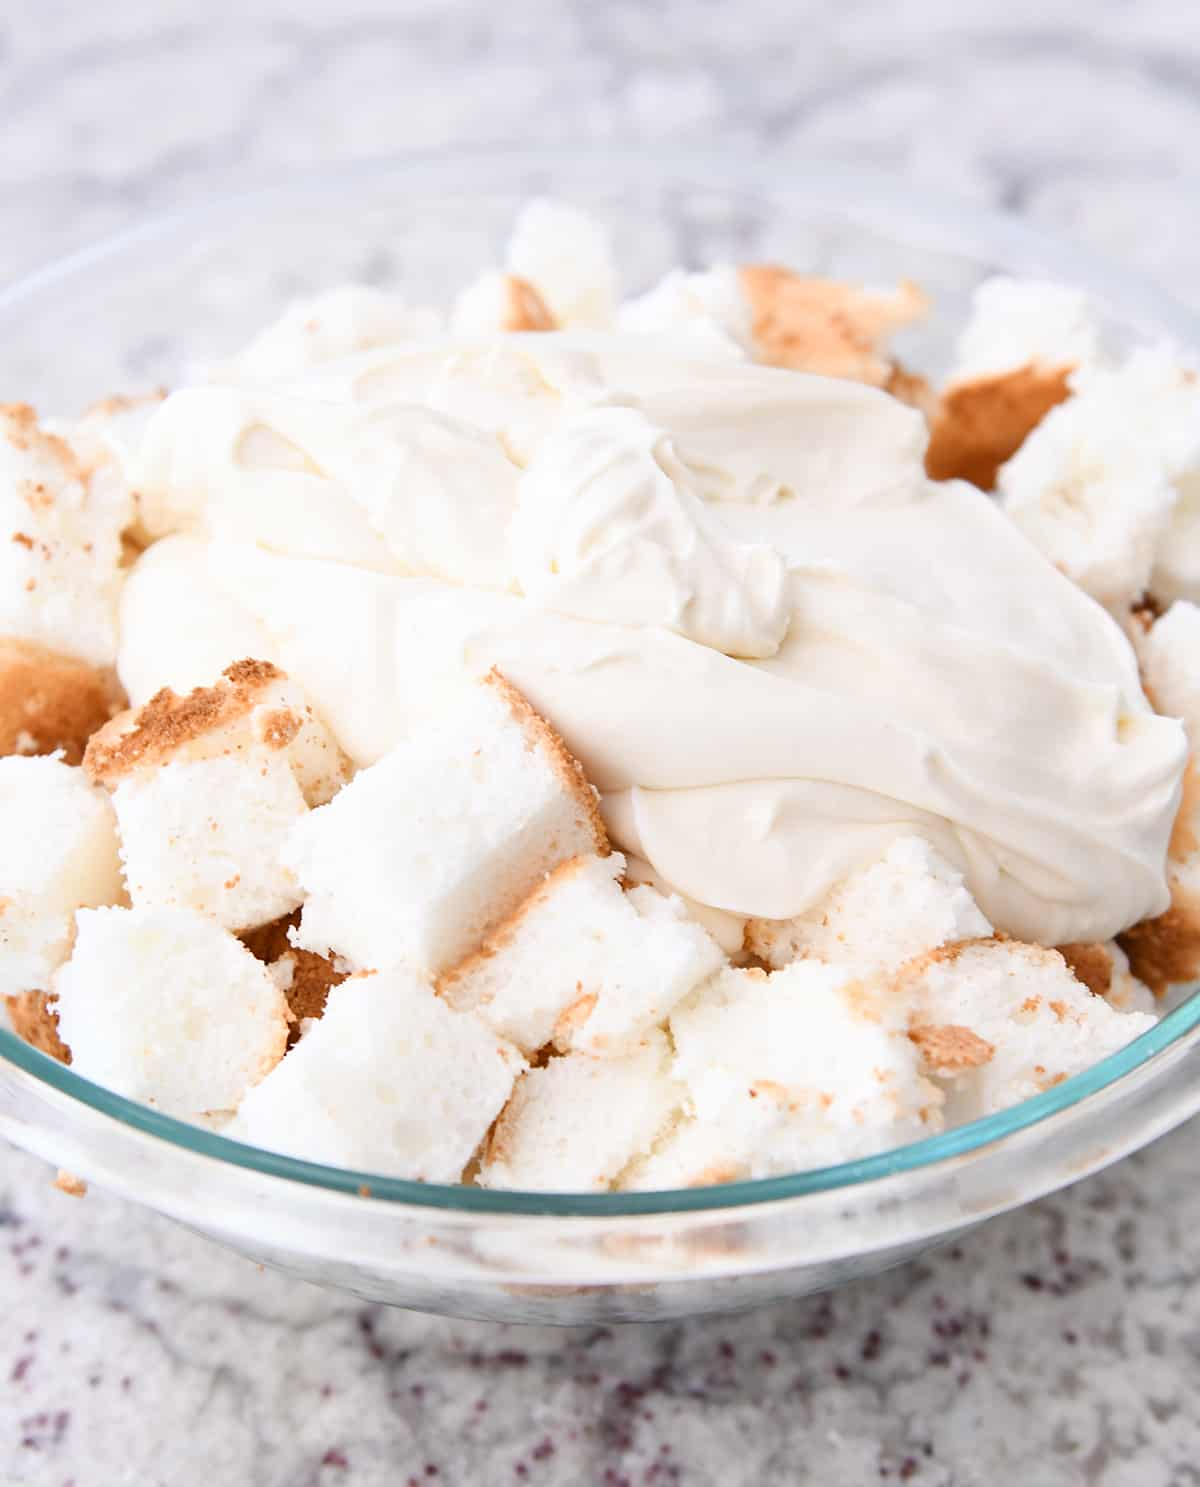 Bowl of angel food cake pieces and cream poured on top.